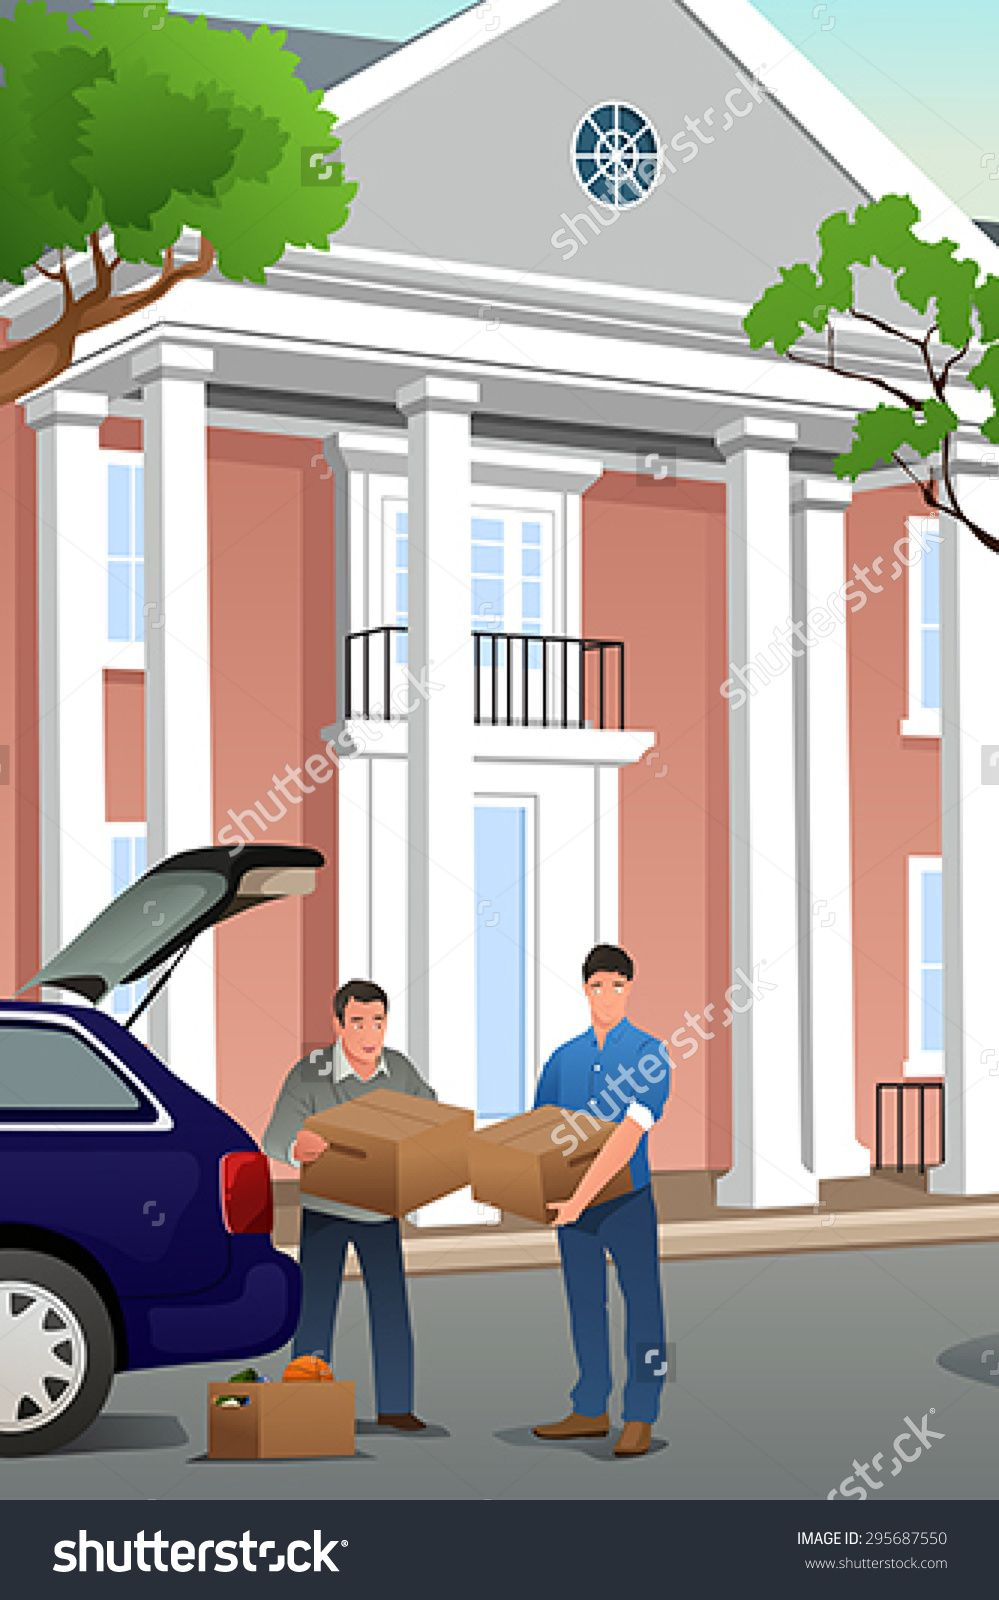 A vector illustration of father helping his teenage son